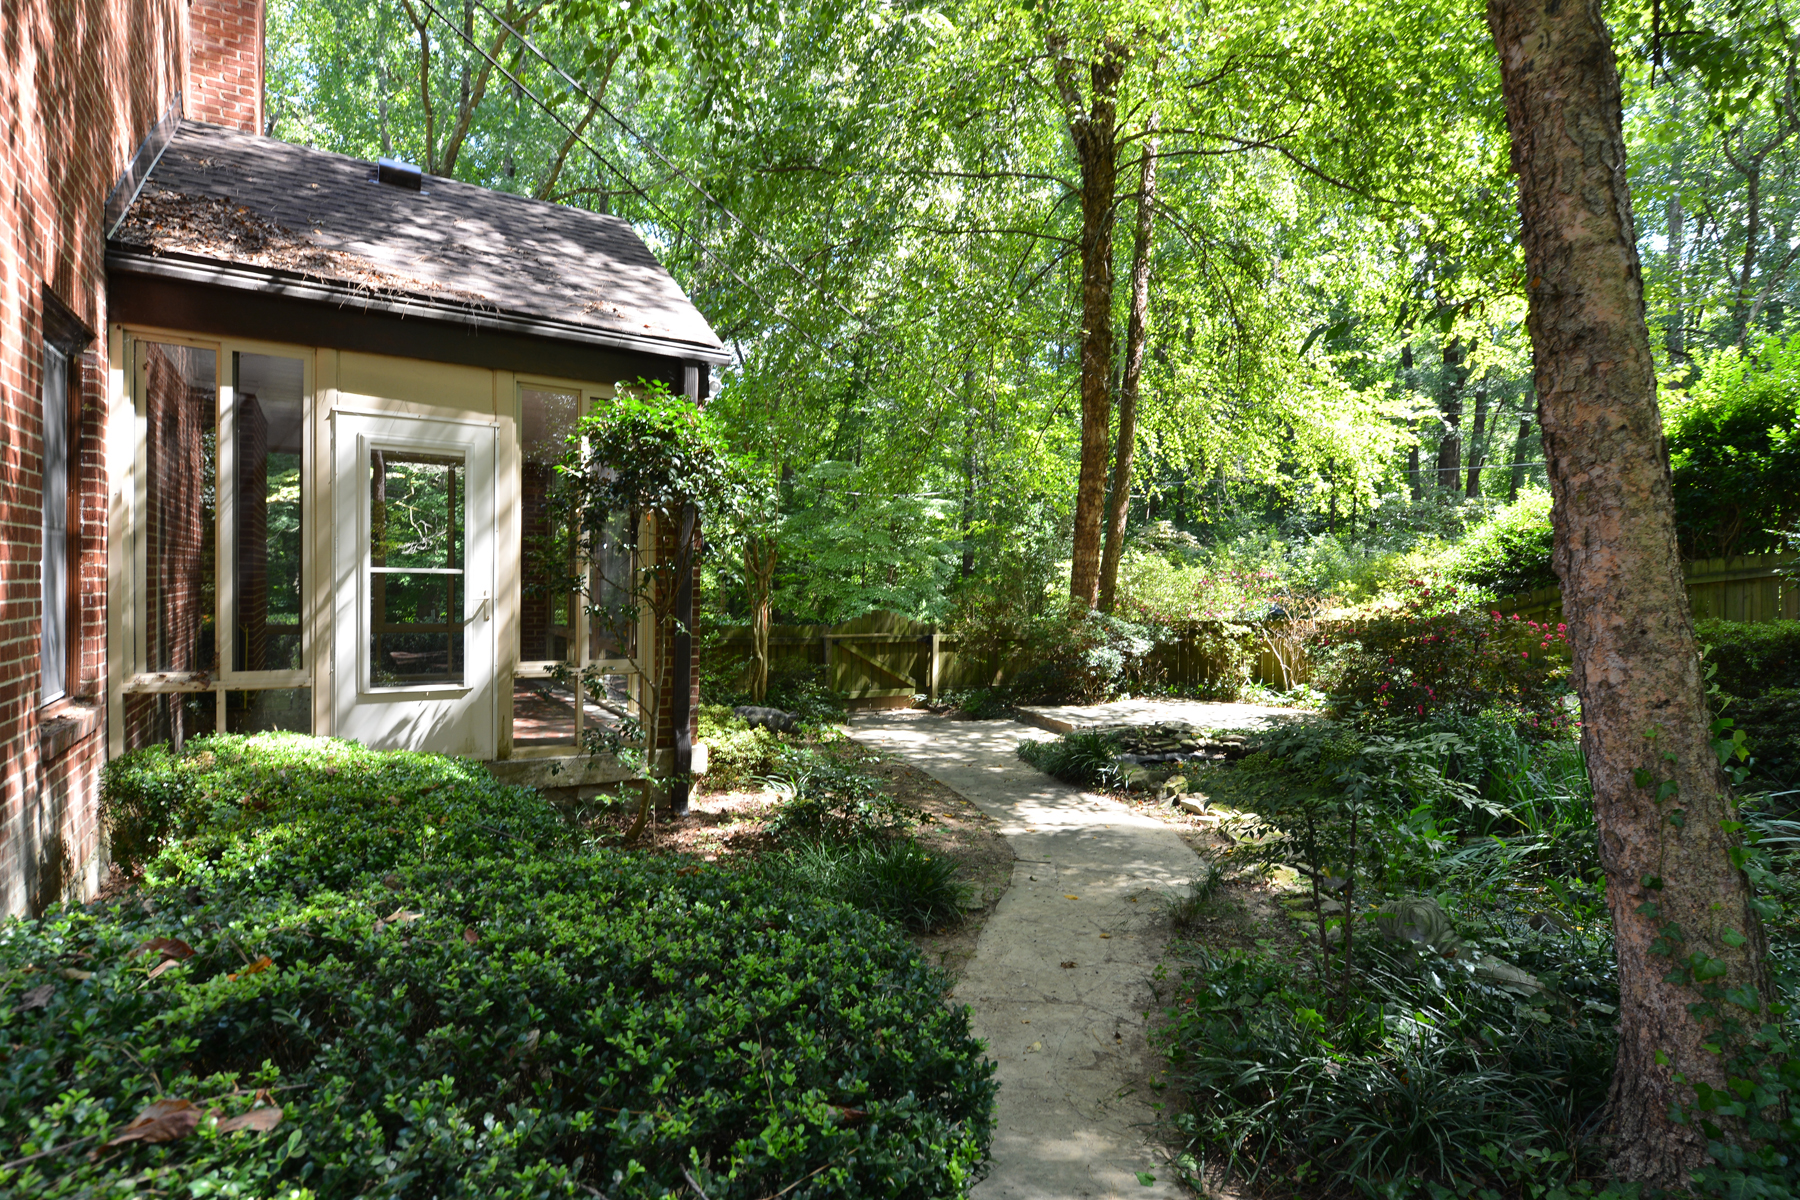 Additional photo for property listing at Charming Morningside Brick Home On The Park 1346 Beech Valley Road NE Atlanta, Georgië 30306 Verenigde Staten